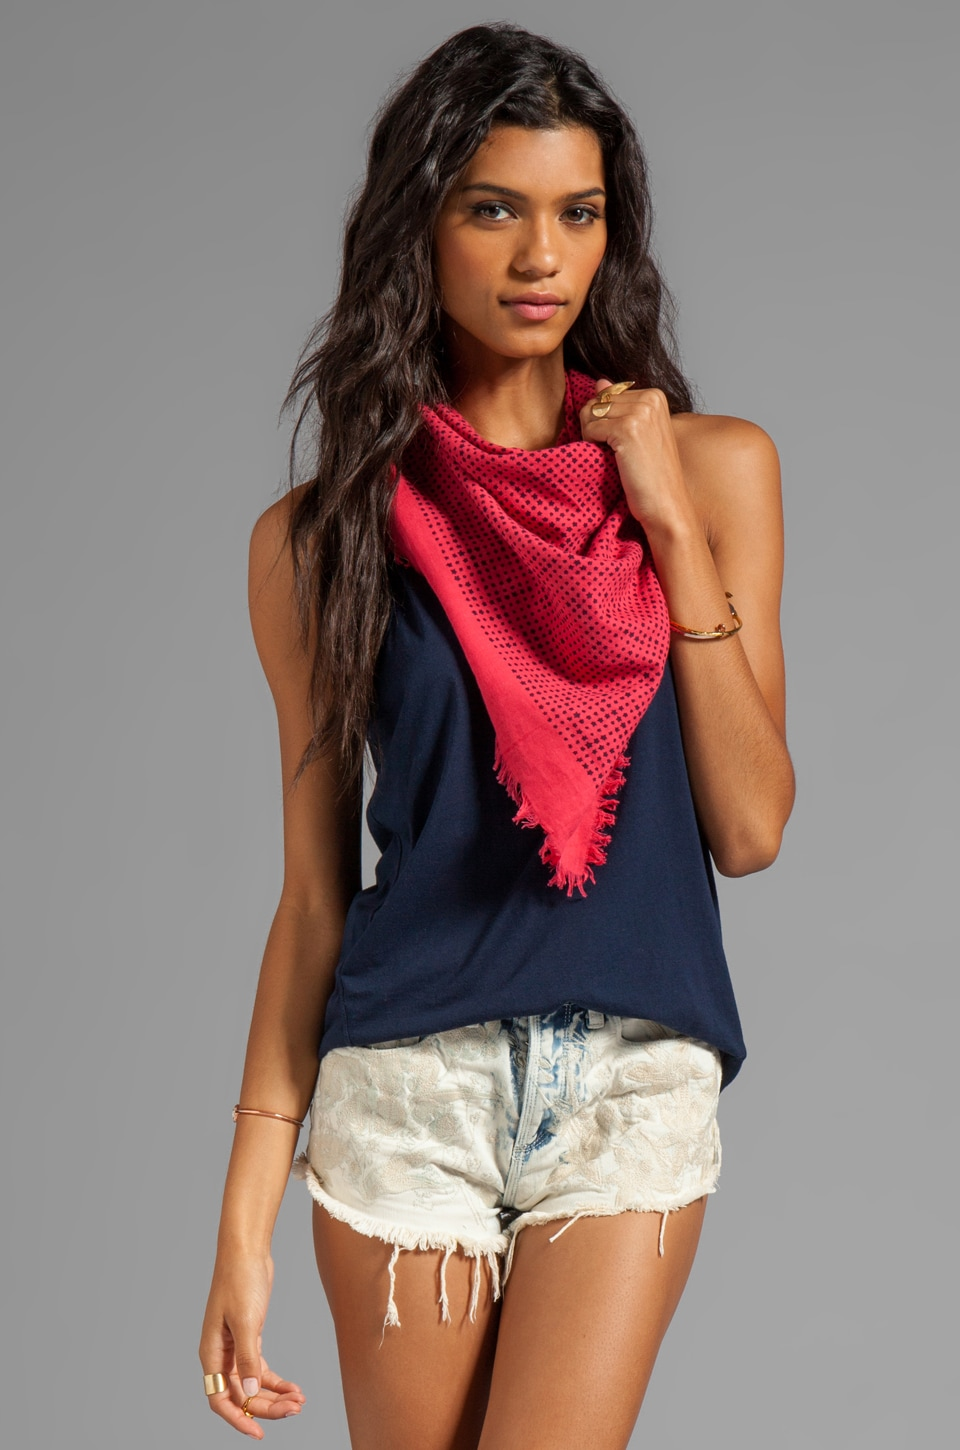 Marc by Marc Jacobs Reluctant Stars Scarf in Rose Petal Multi